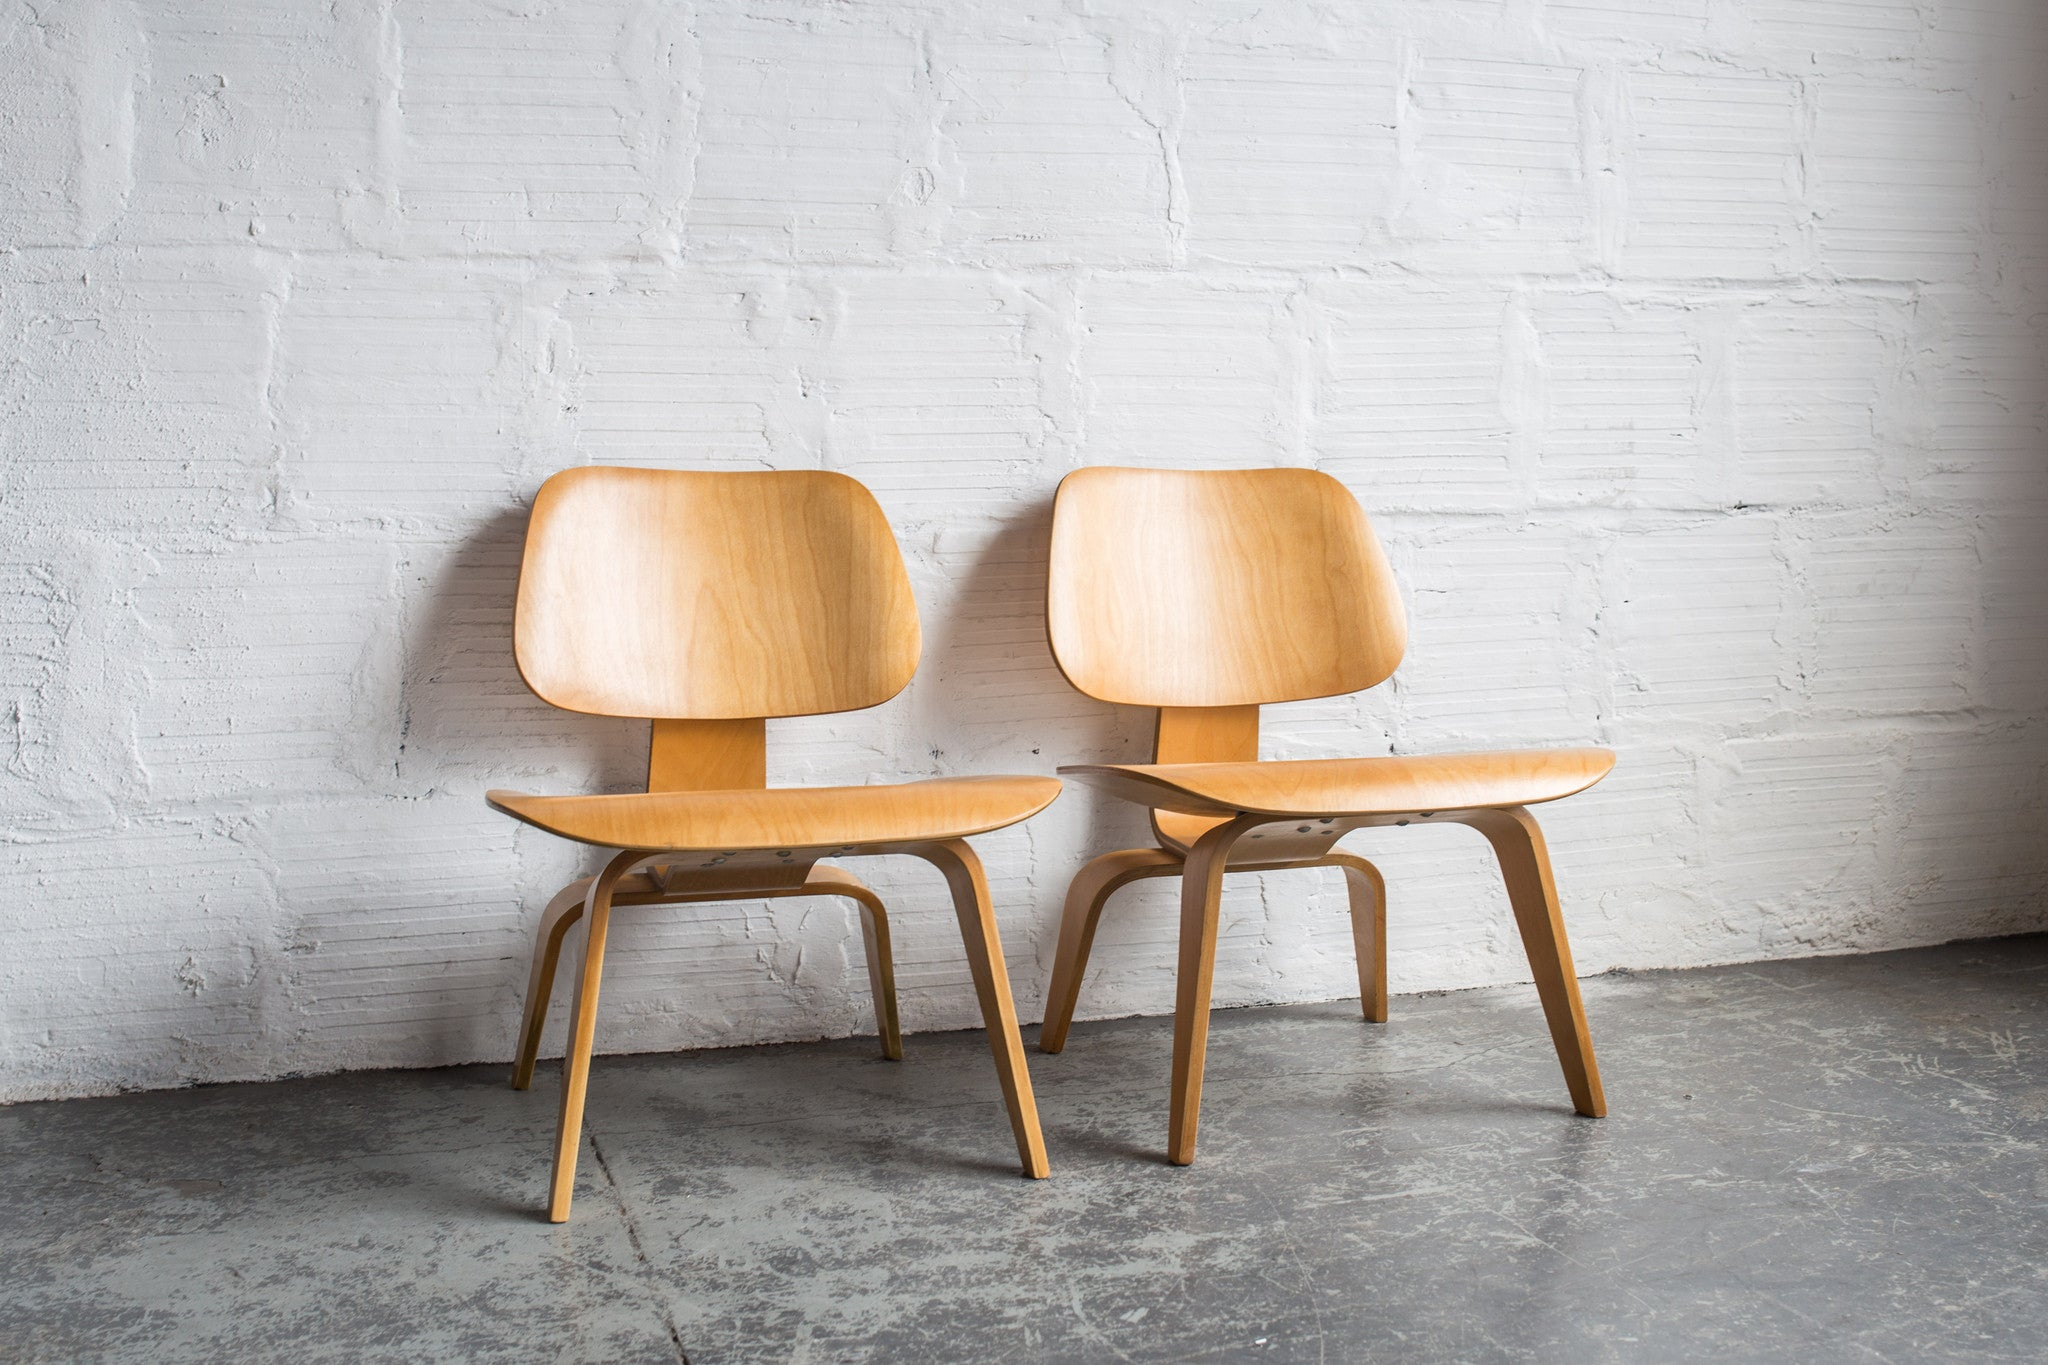 Eames Molded Plywood Lounge Chair with Wood Base - Herman Miller